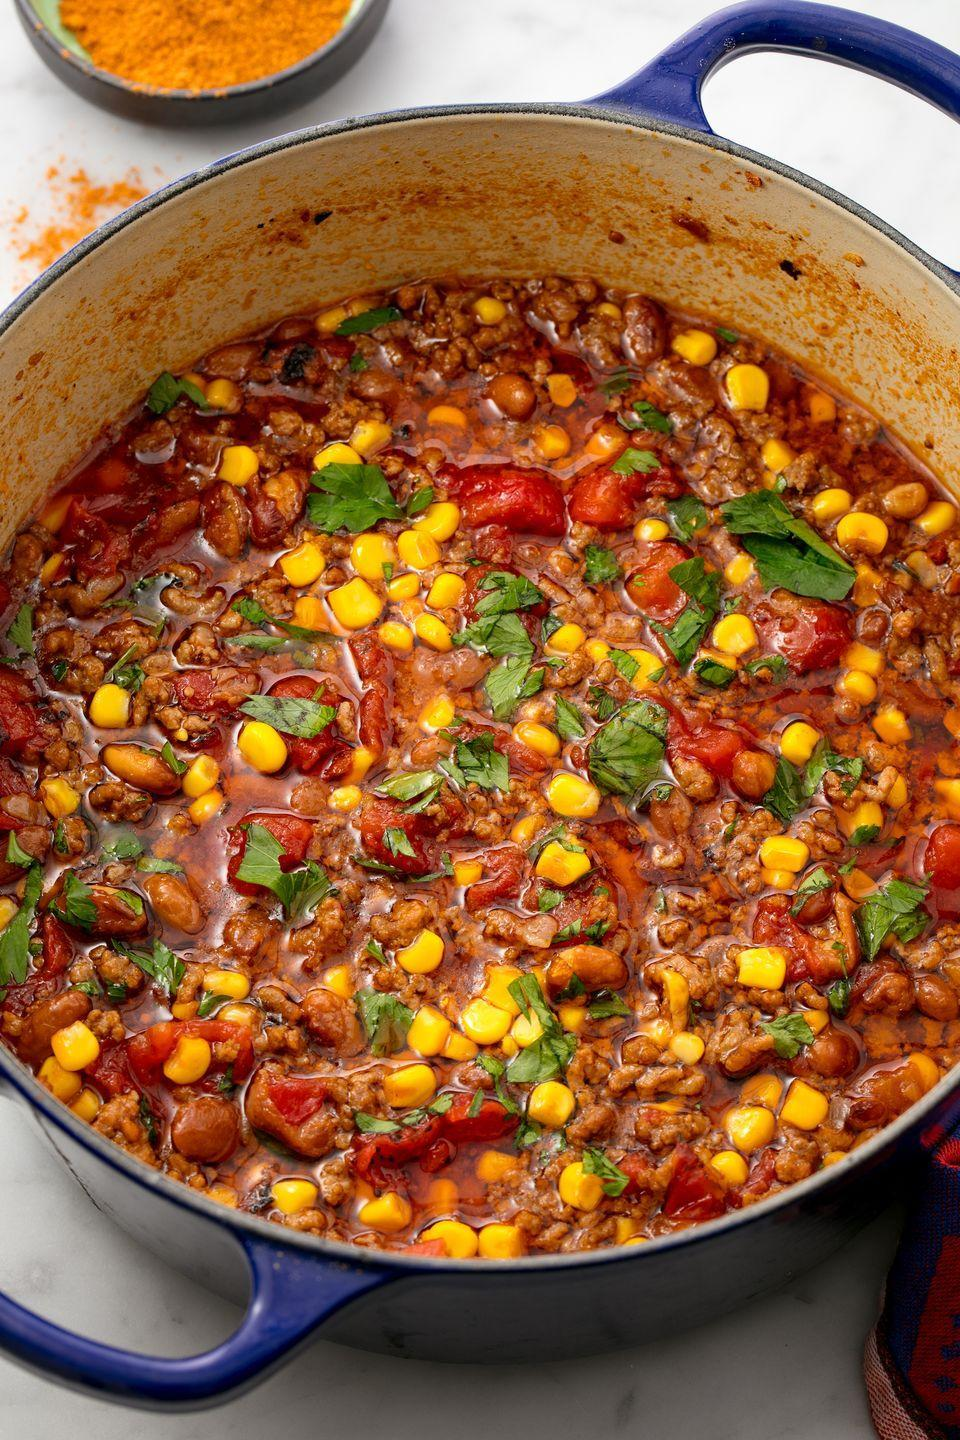 "<p>We need to taco about how good this soup is.</p><p>Get the recipe from <a href=""https://www.delish.com/cooking/recipe-ideas/recipes/a54971/easy-taco-soup-recipe/"" rel=""nofollow noopener"" target=""_blank"" data-ylk=""slk:Delish"" class=""link rapid-noclick-resp"">Delish</a>.</p>"